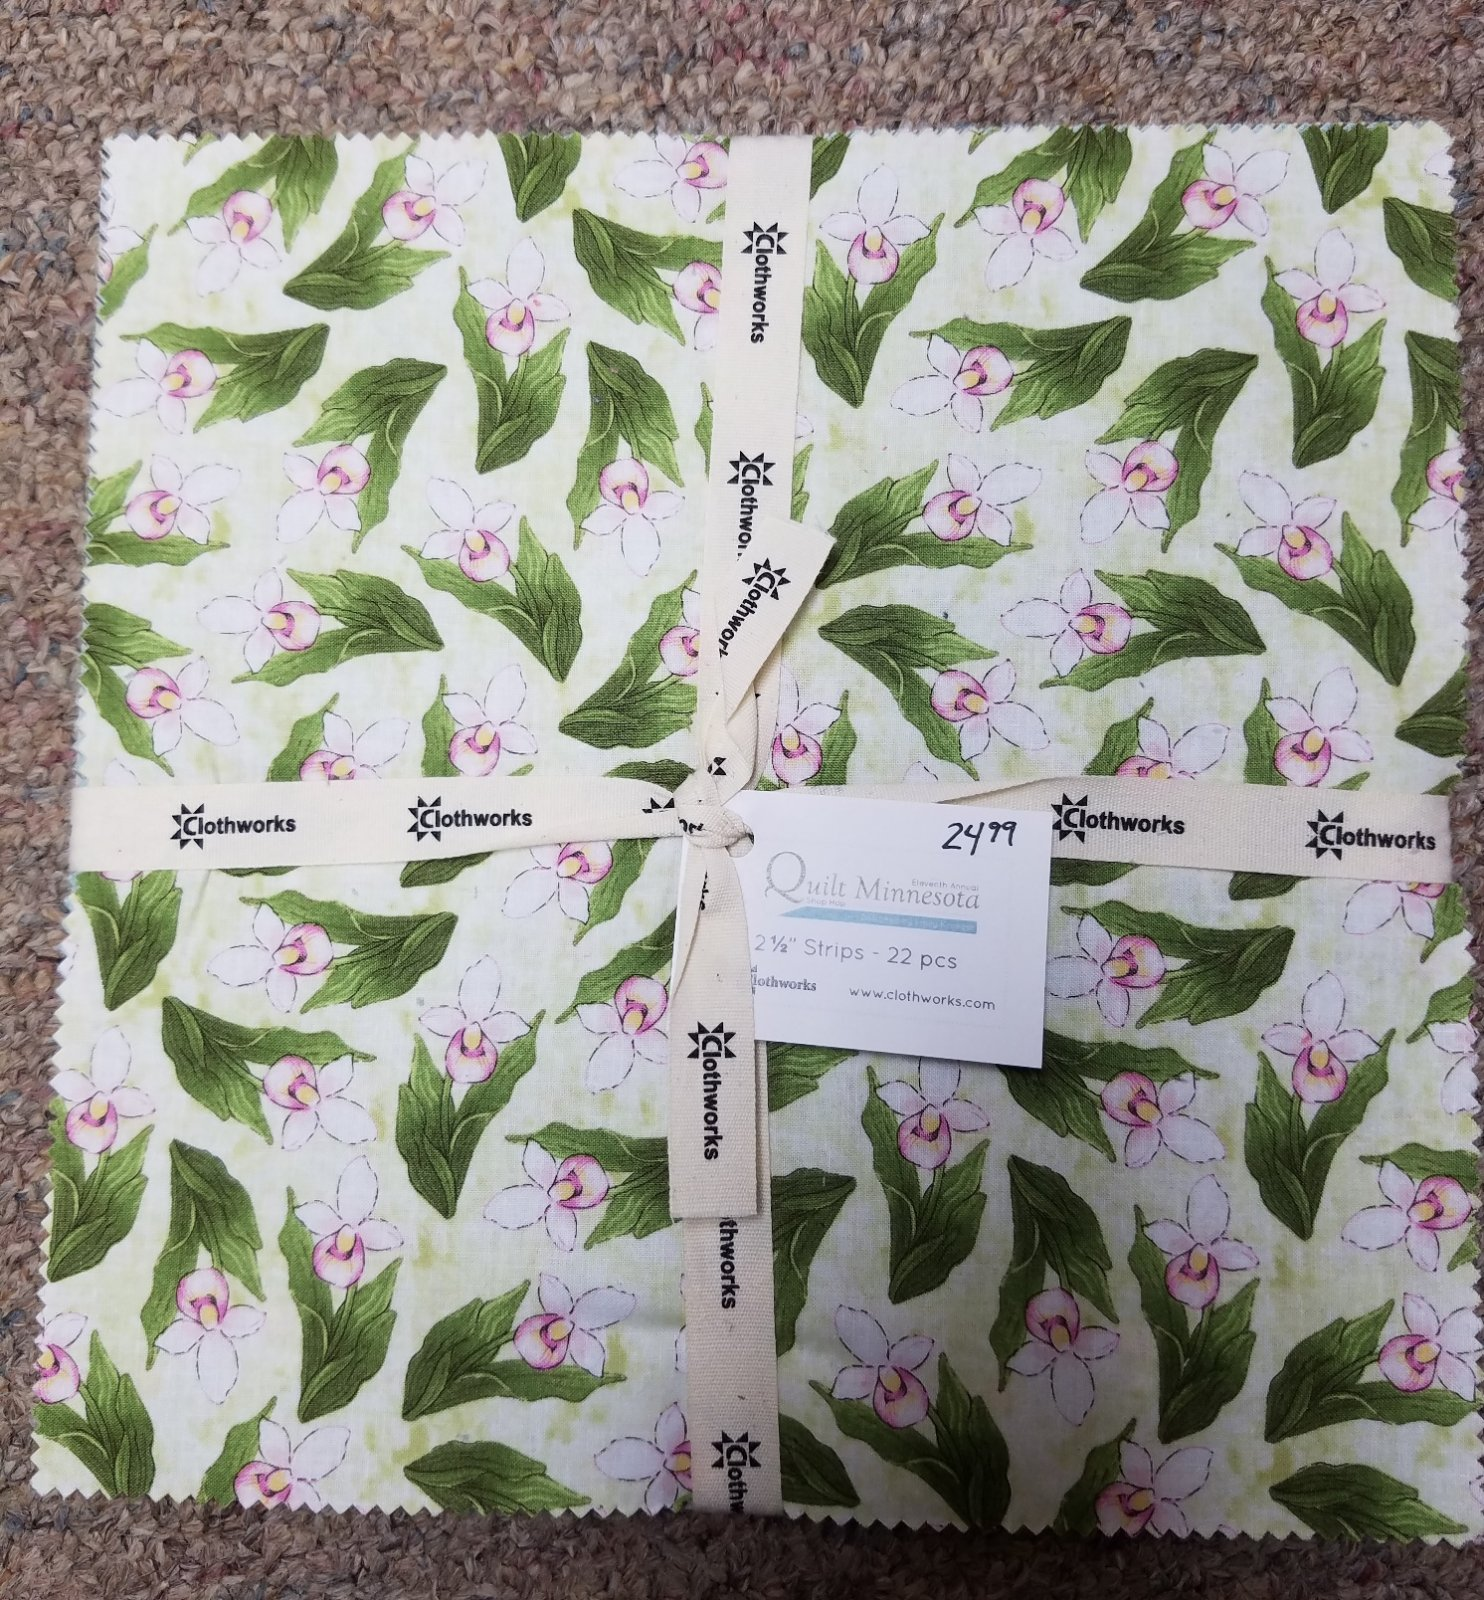 2017 Quilt MN 10 inch Squares - 22 pieces